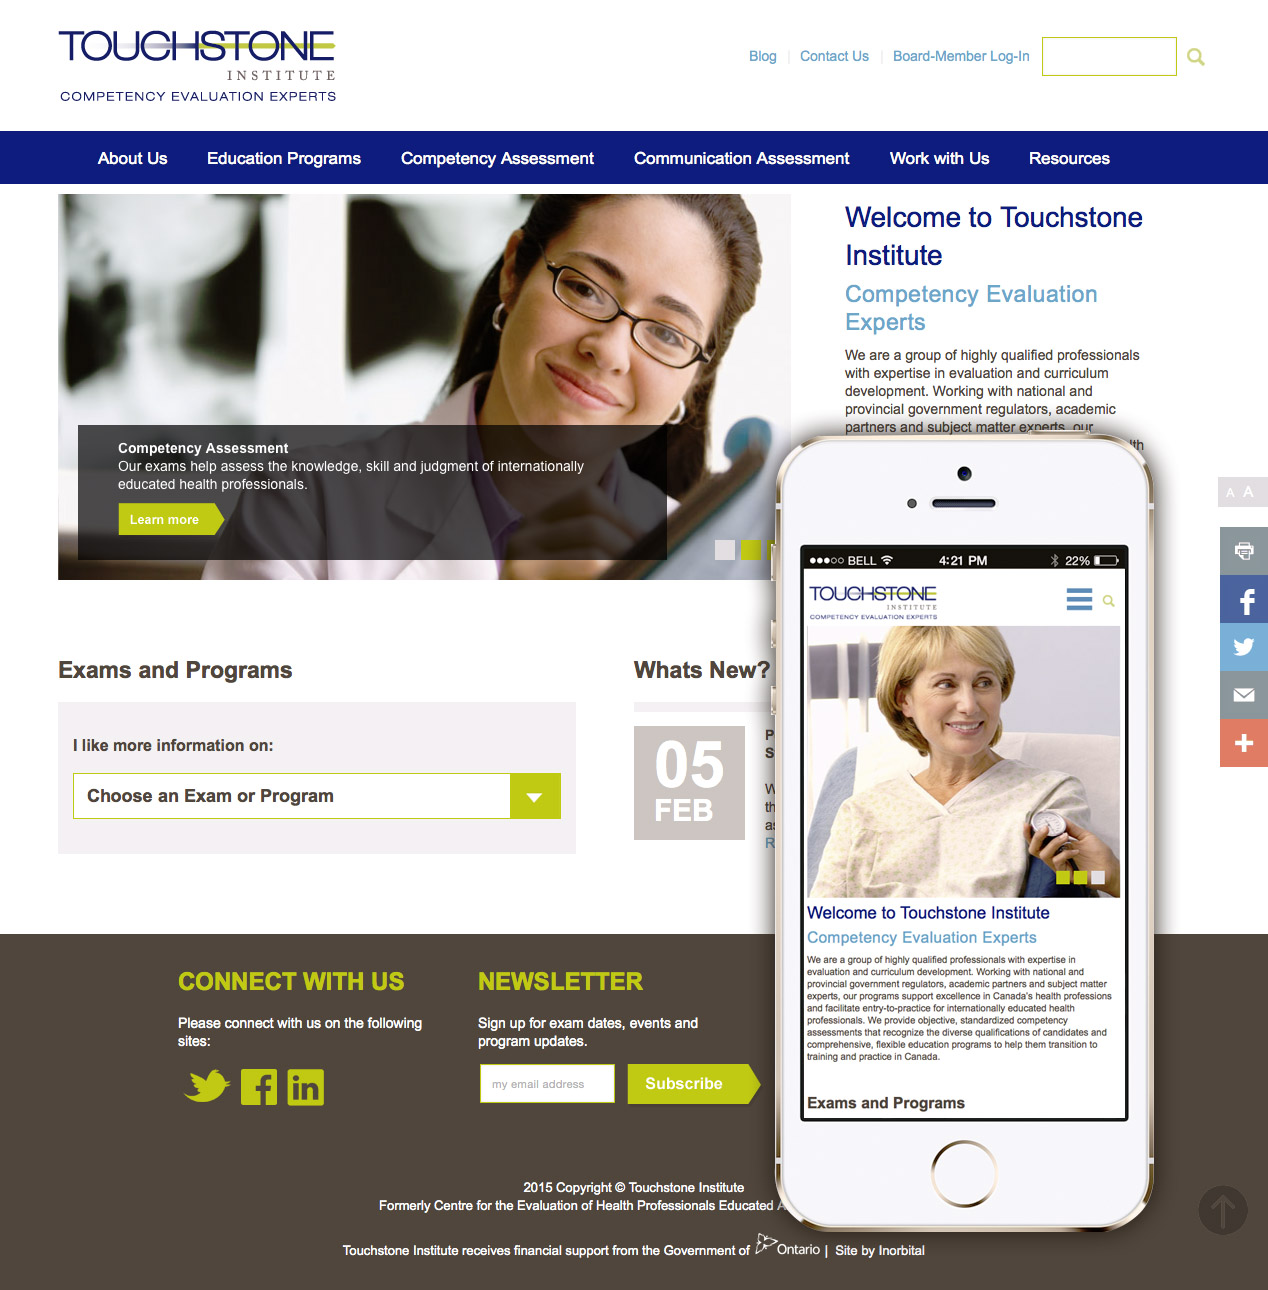 Touchstone Institute home page design